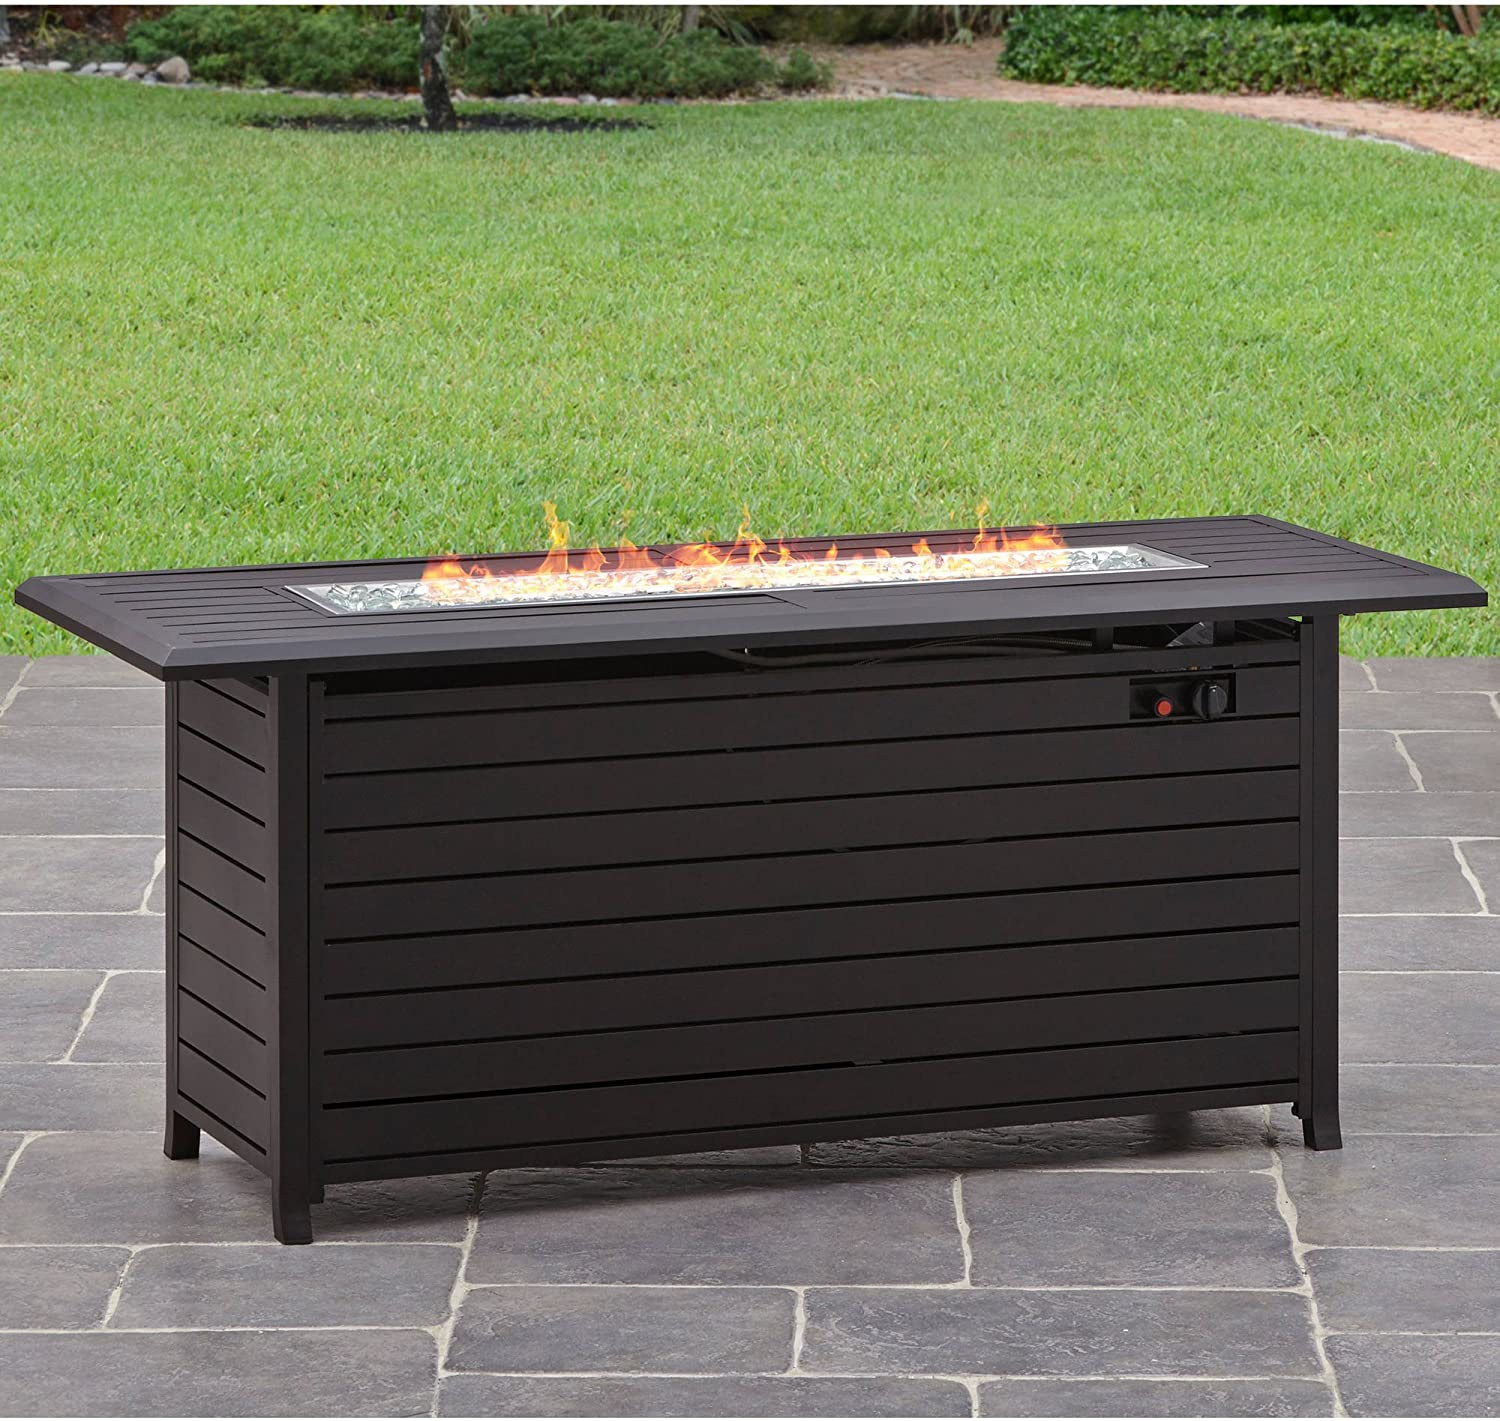 Better Homes and Gardens Carter Hills, Durable and Rust-Resistant Design 57 Rectangular Gas Fire Pit, with Stainless Steel Burner Rectangular Carter